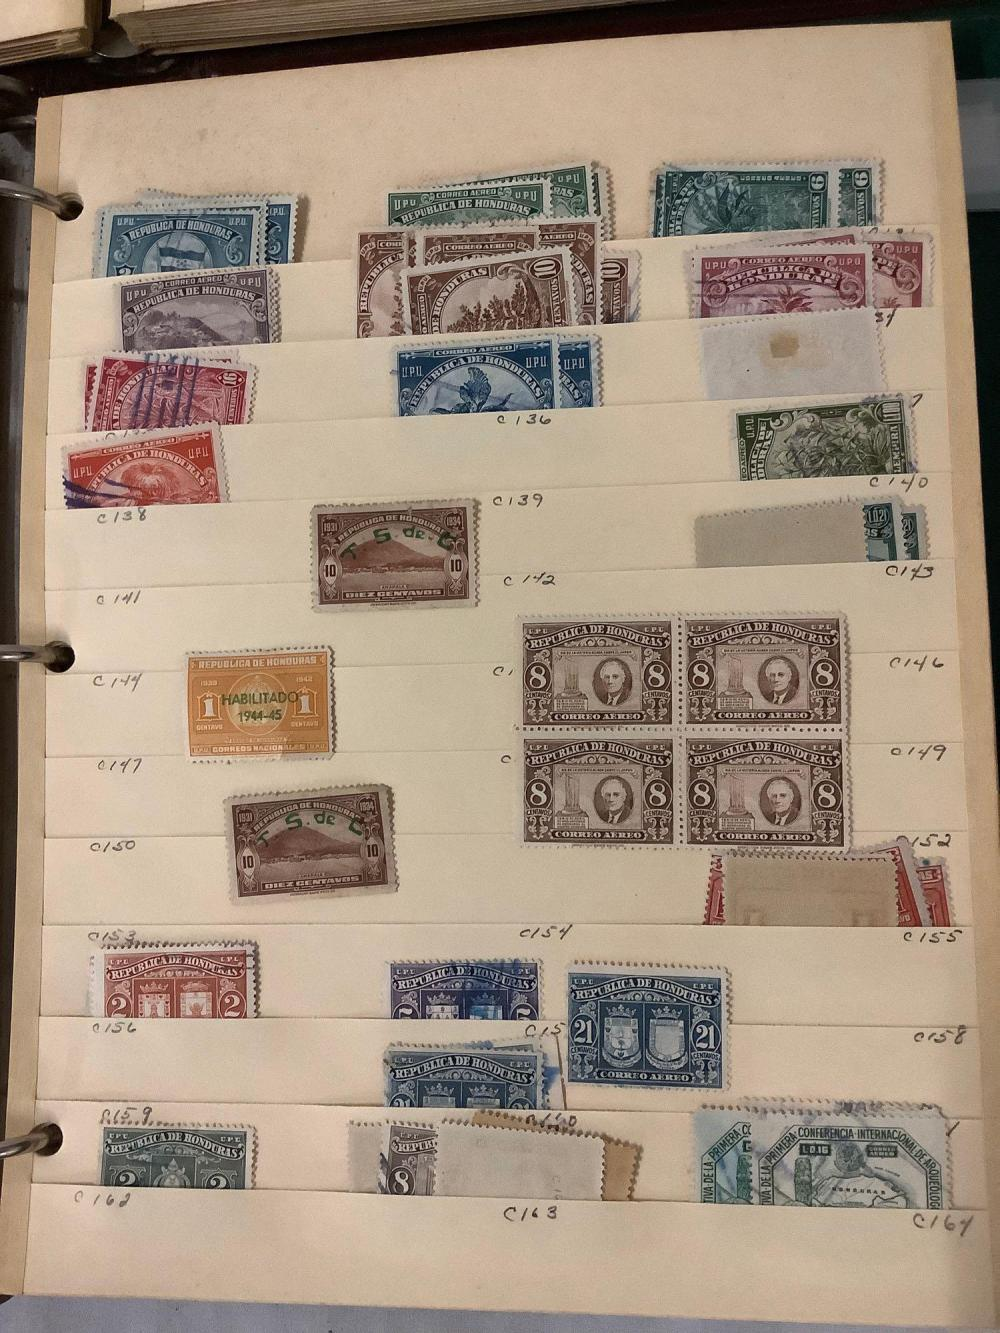 Lot 355: 3 binders full of antique stamps from Dominican Republic, Ecuador & Honduras, 1890s to modern